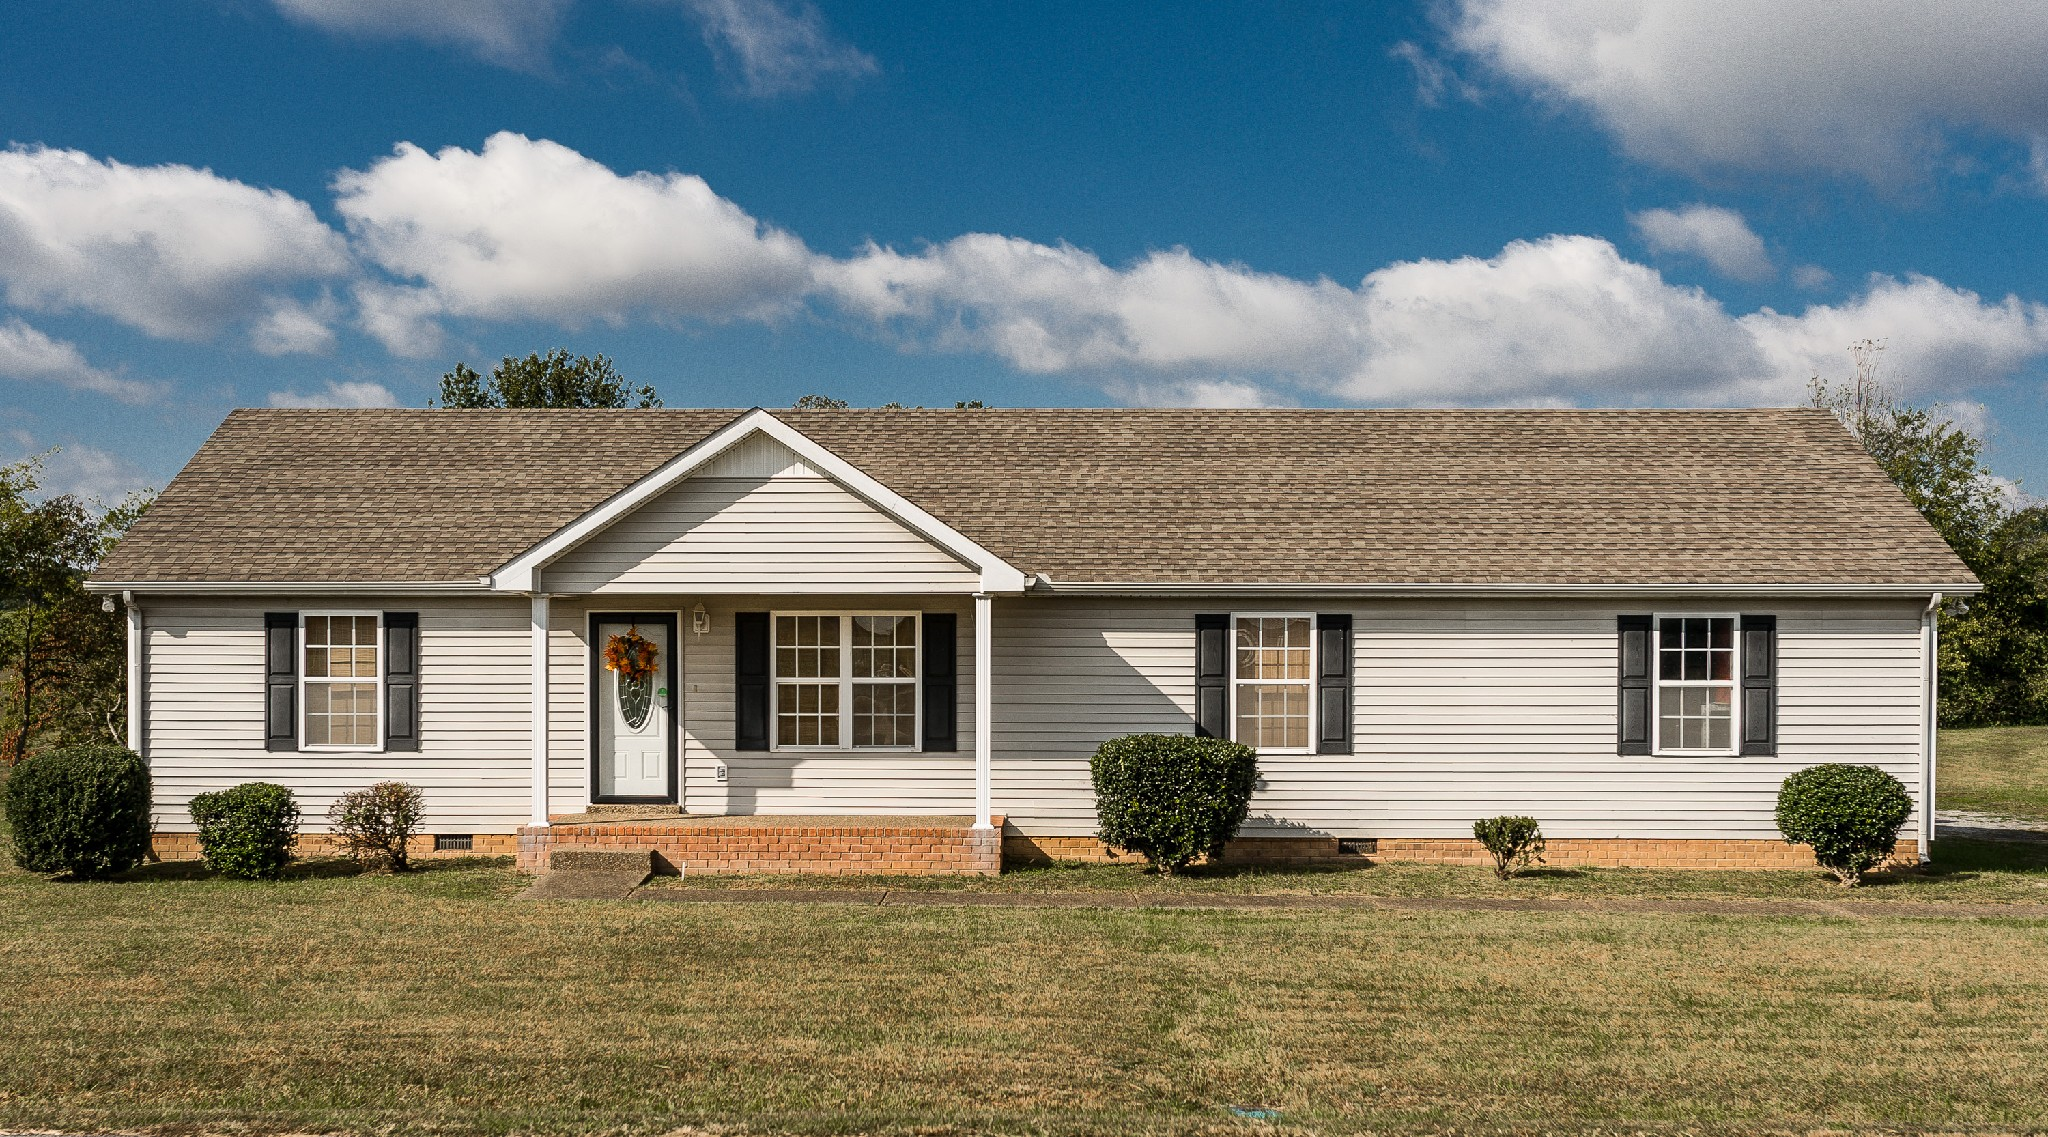 491 White Rd, Portland, TN 37148 - Portland, TN real estate listing